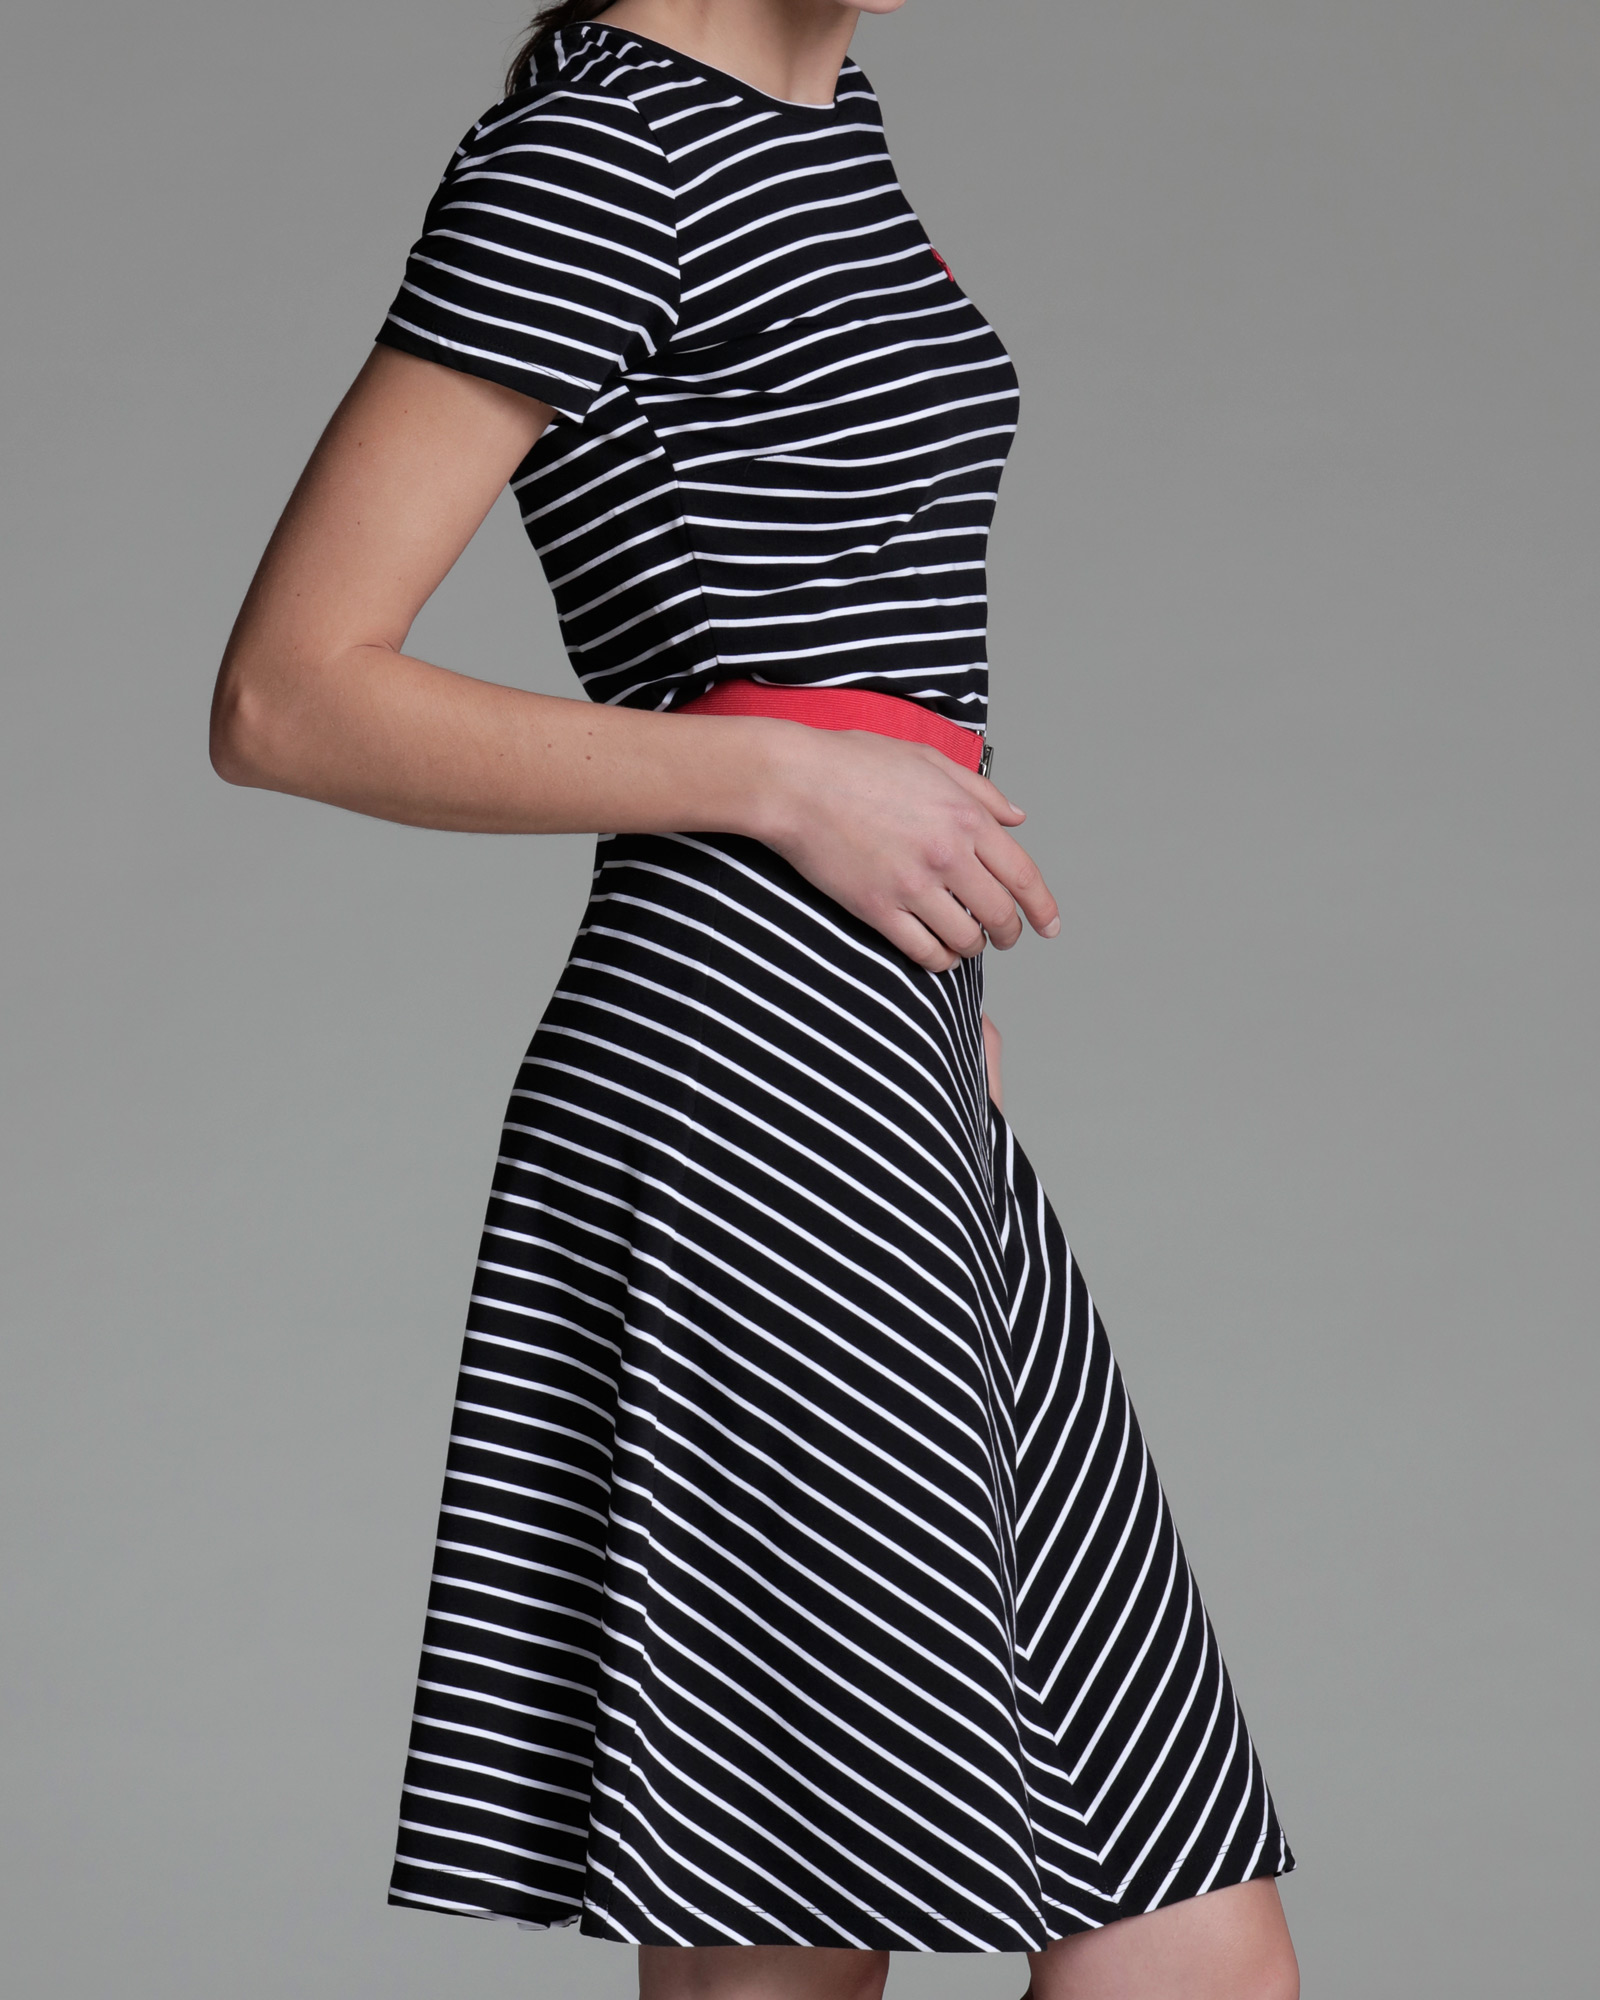 Tant Sofia-Adriane dress Striped, Mme YèYè